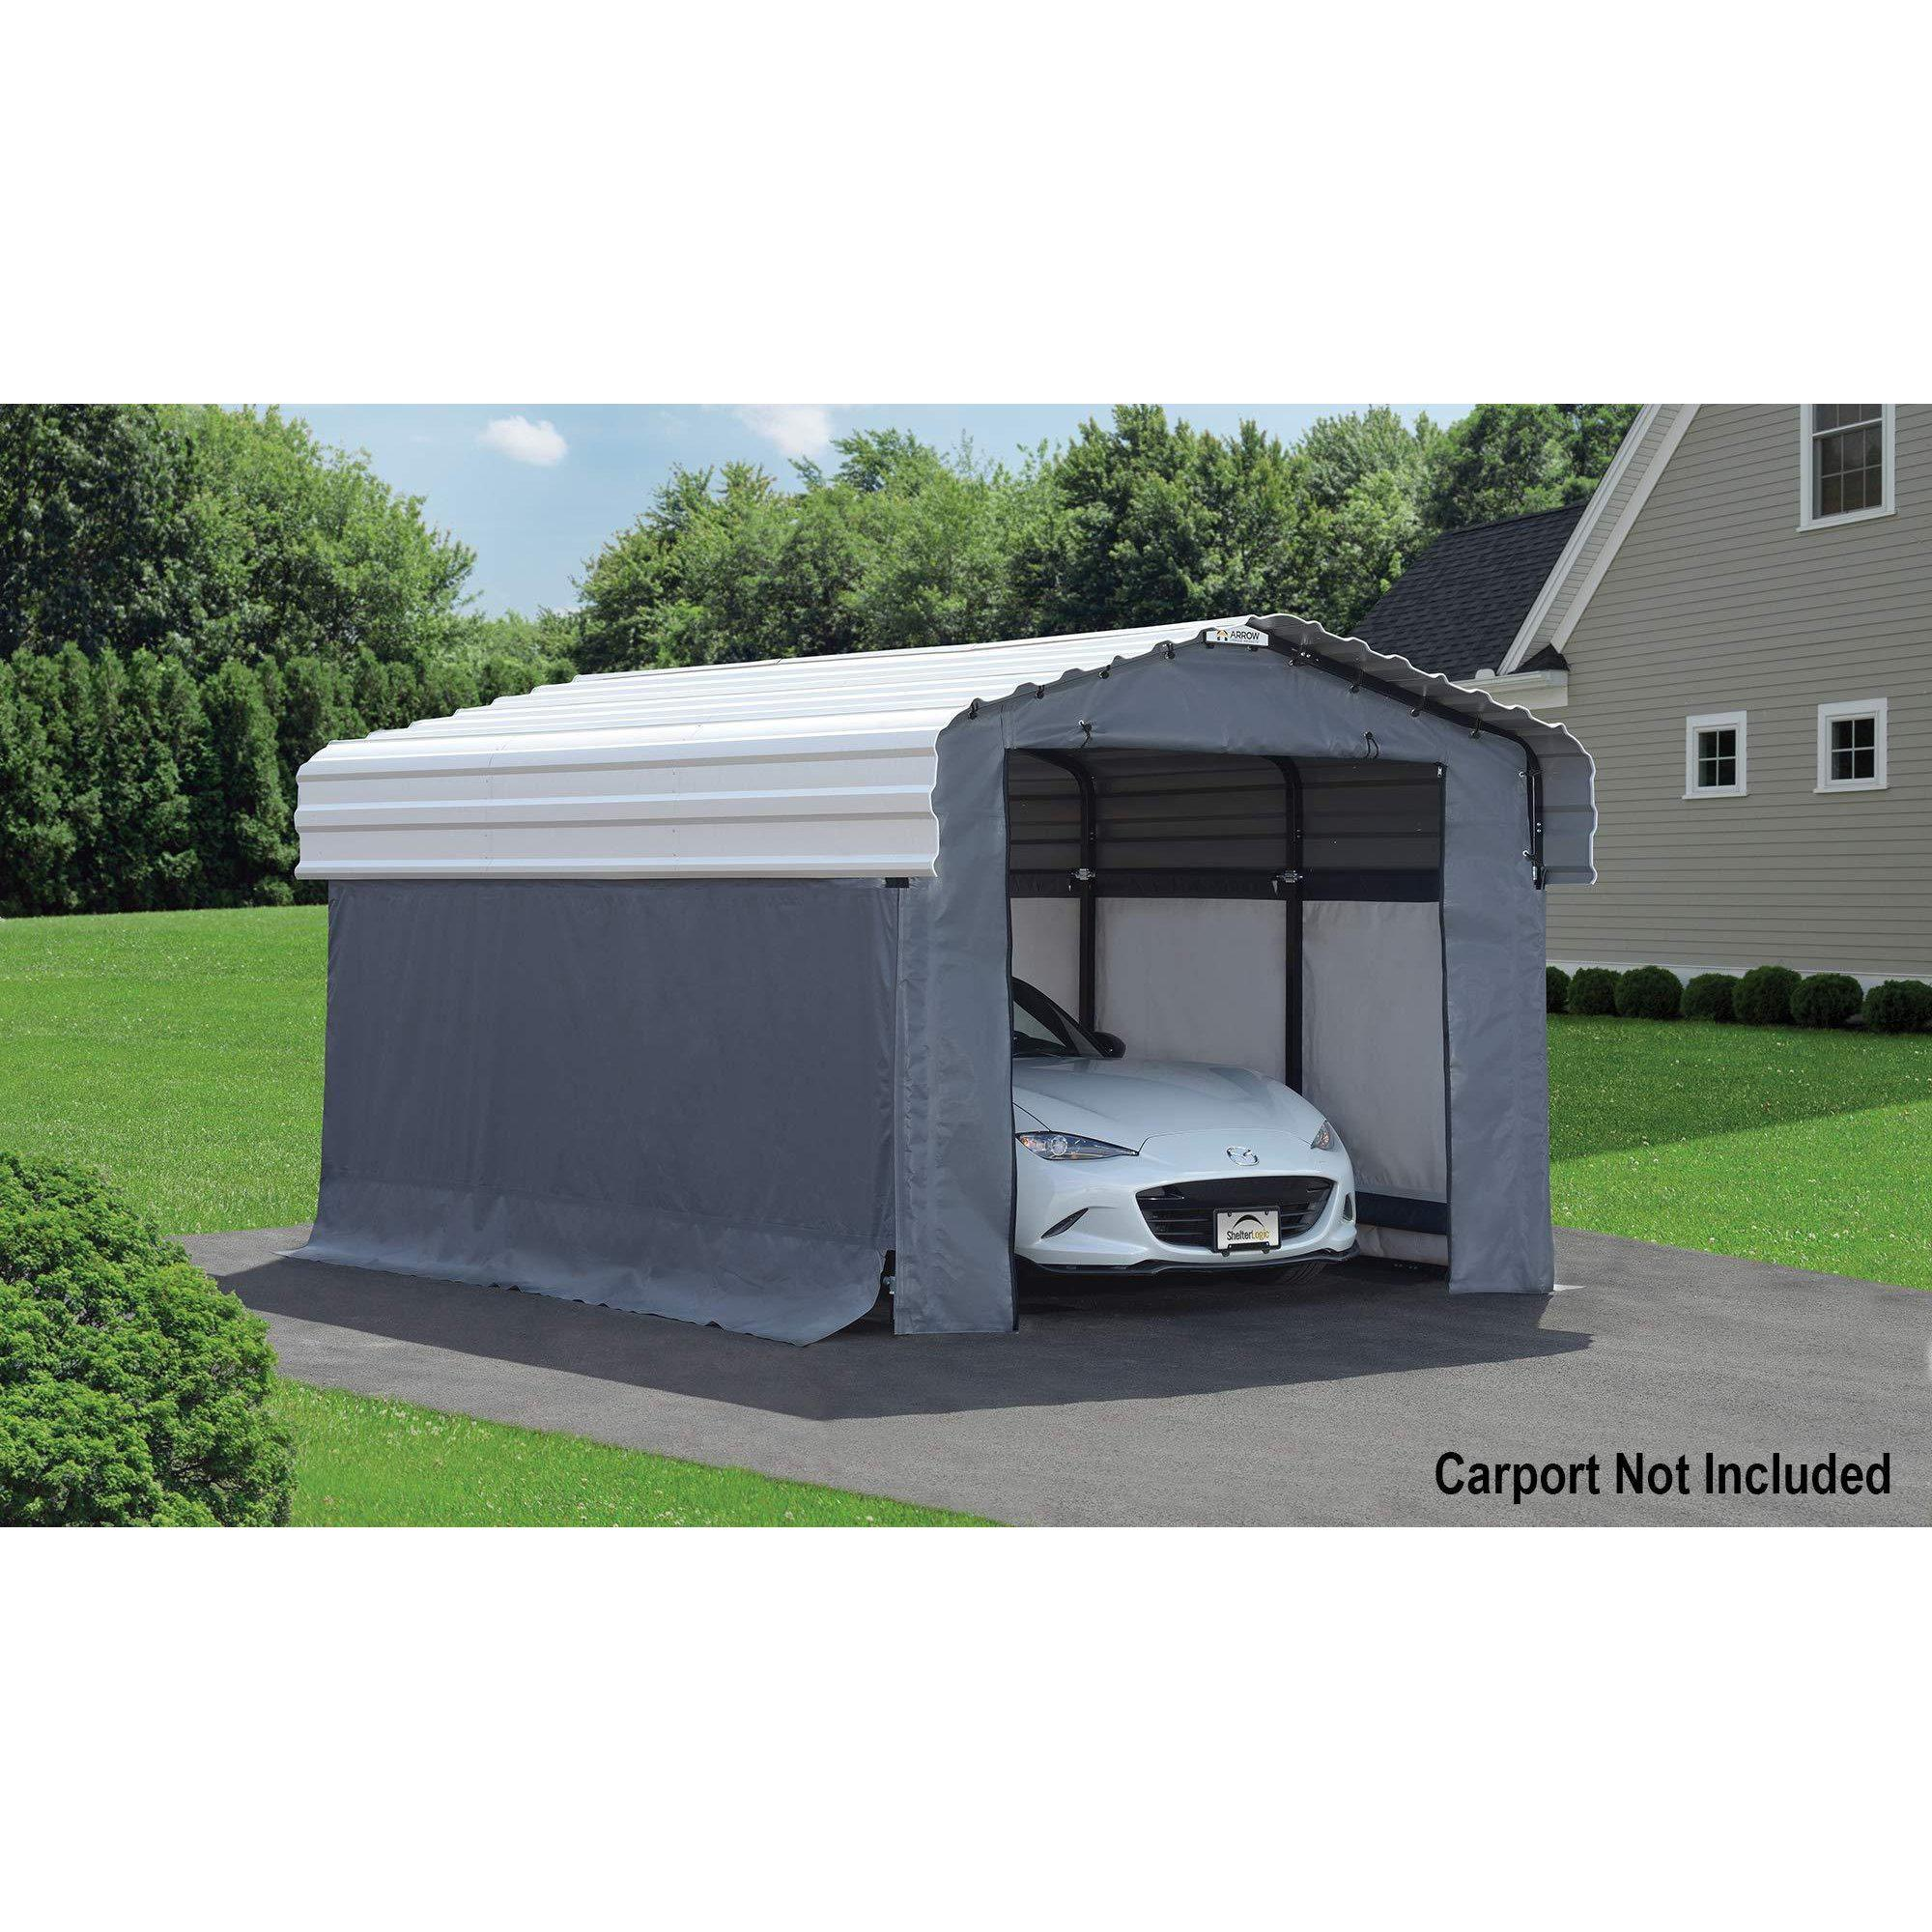 Arrow Fabric Enclosure Kit with UV Treated Cover for 10 x 15-Feet Carports, 10' x 15'